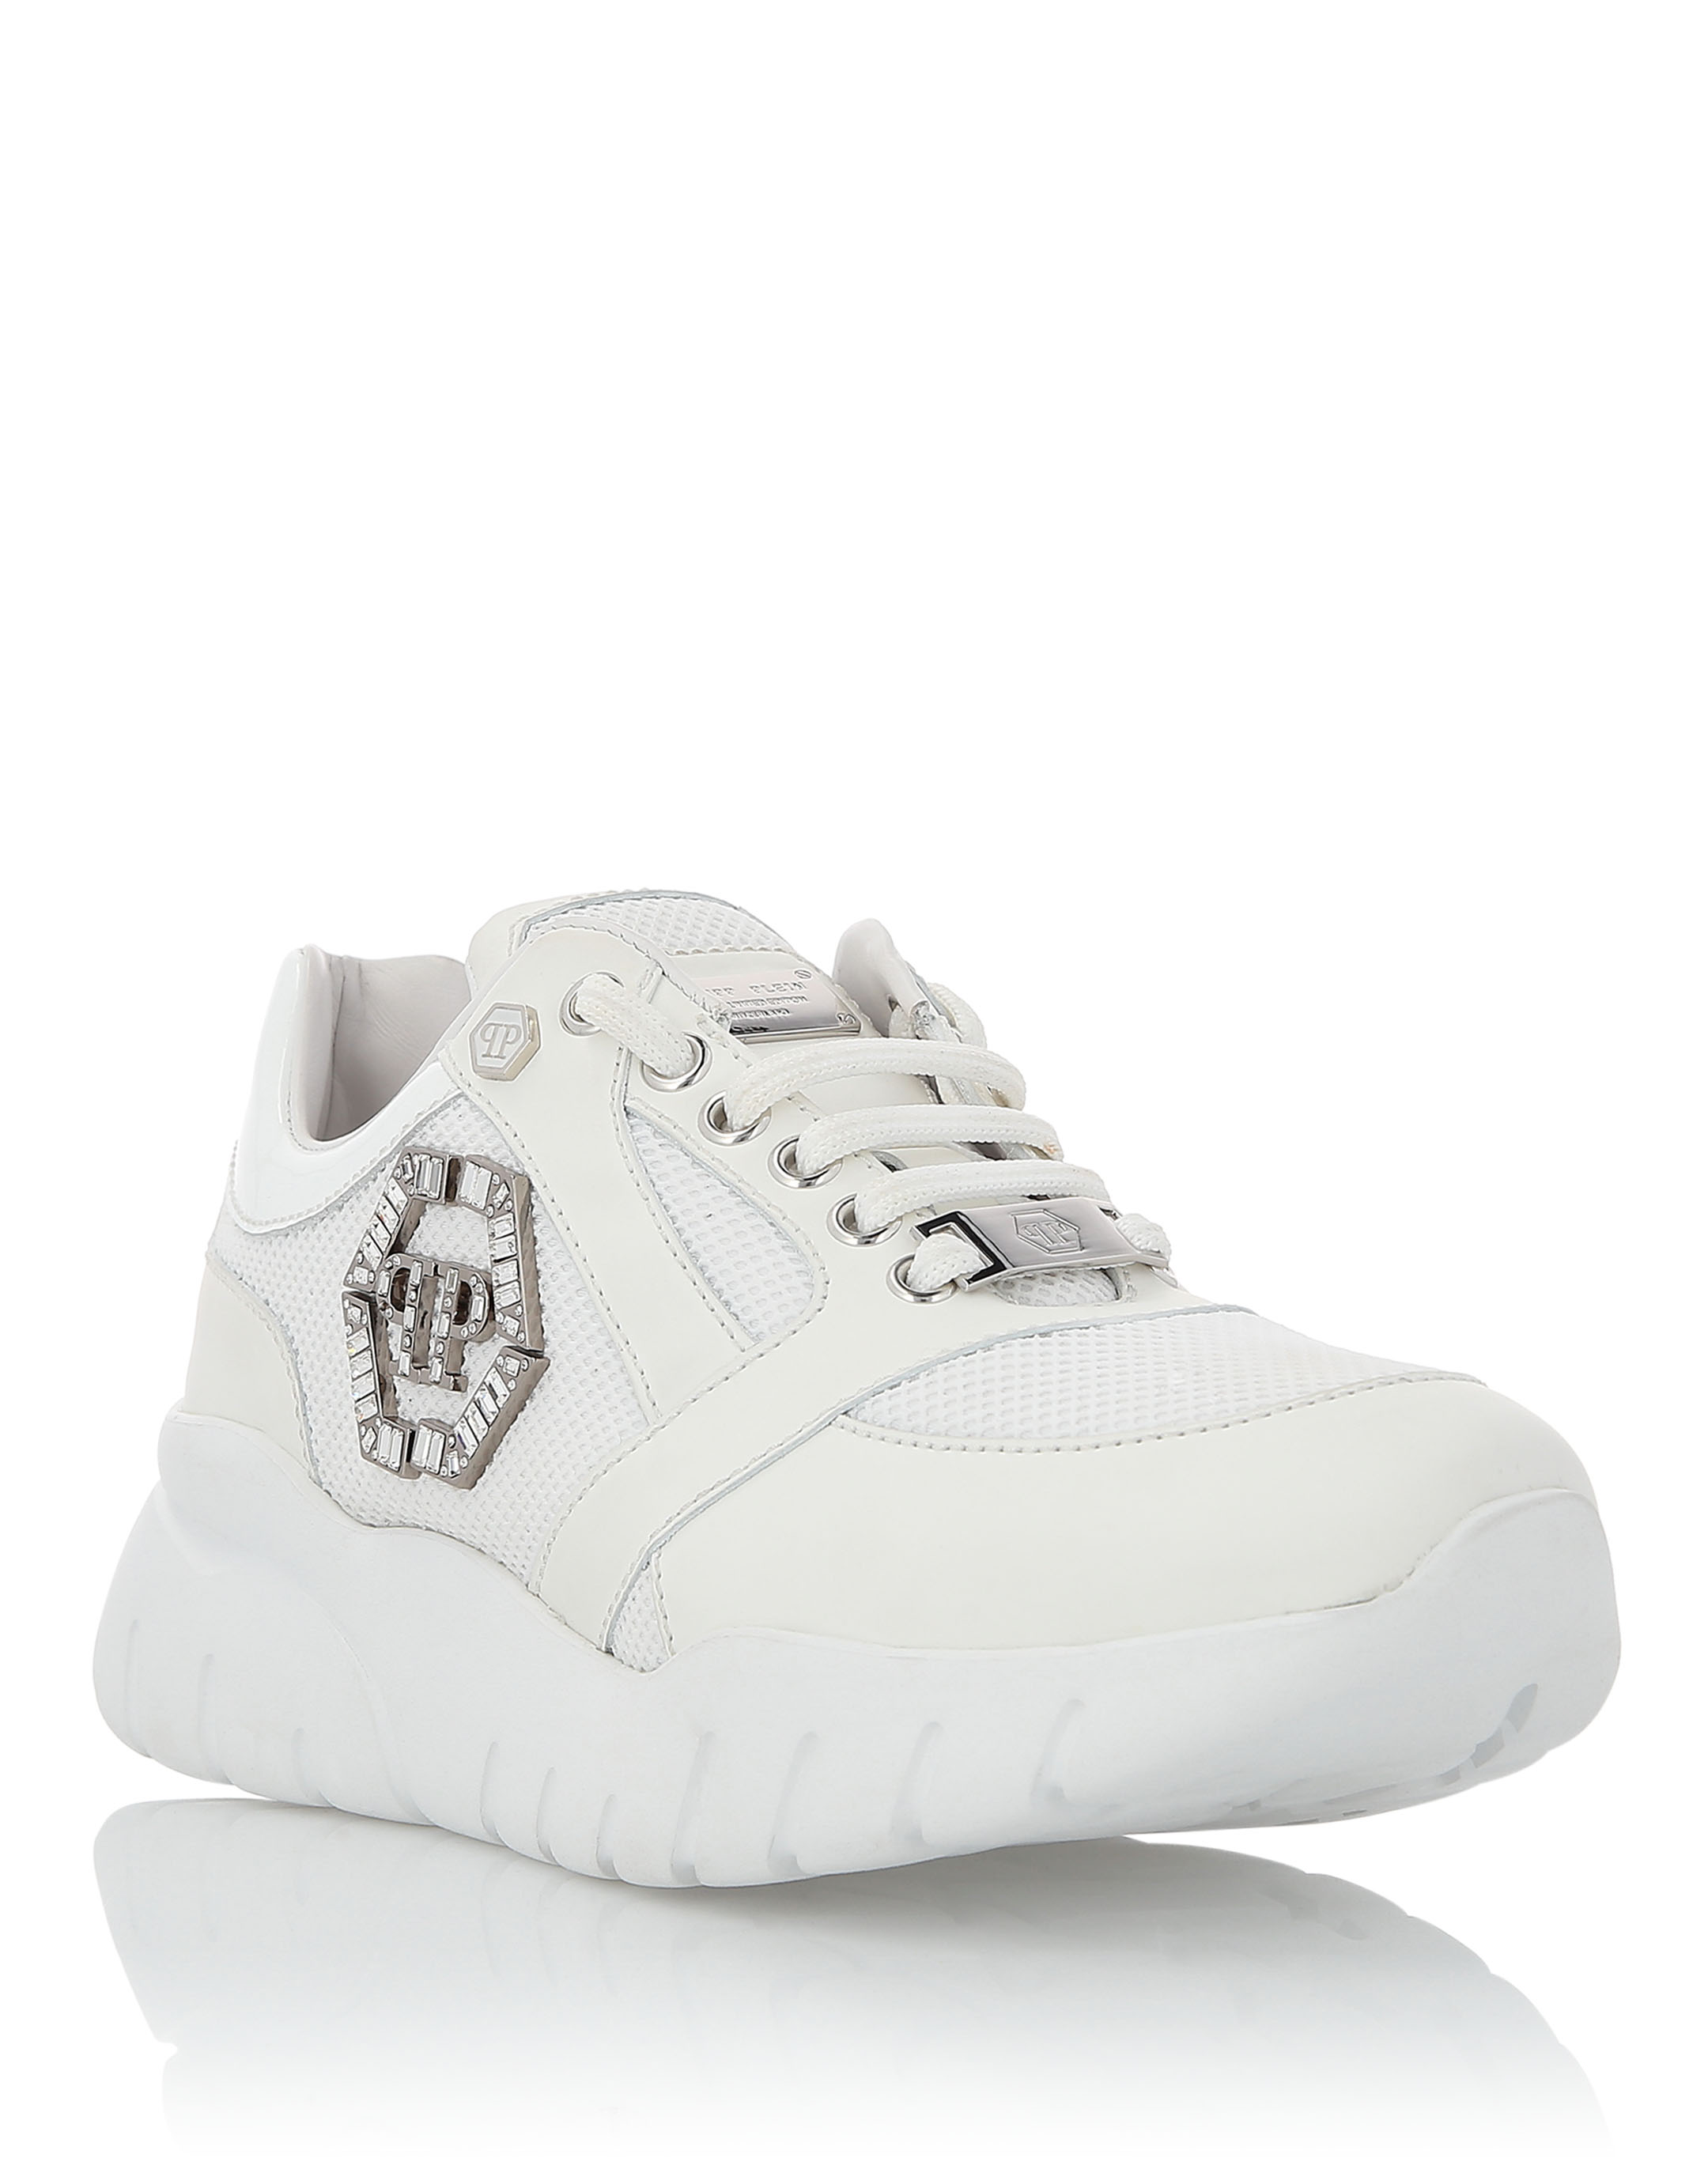 Logo Embellished Runners in White from PHILIPP PLEIN